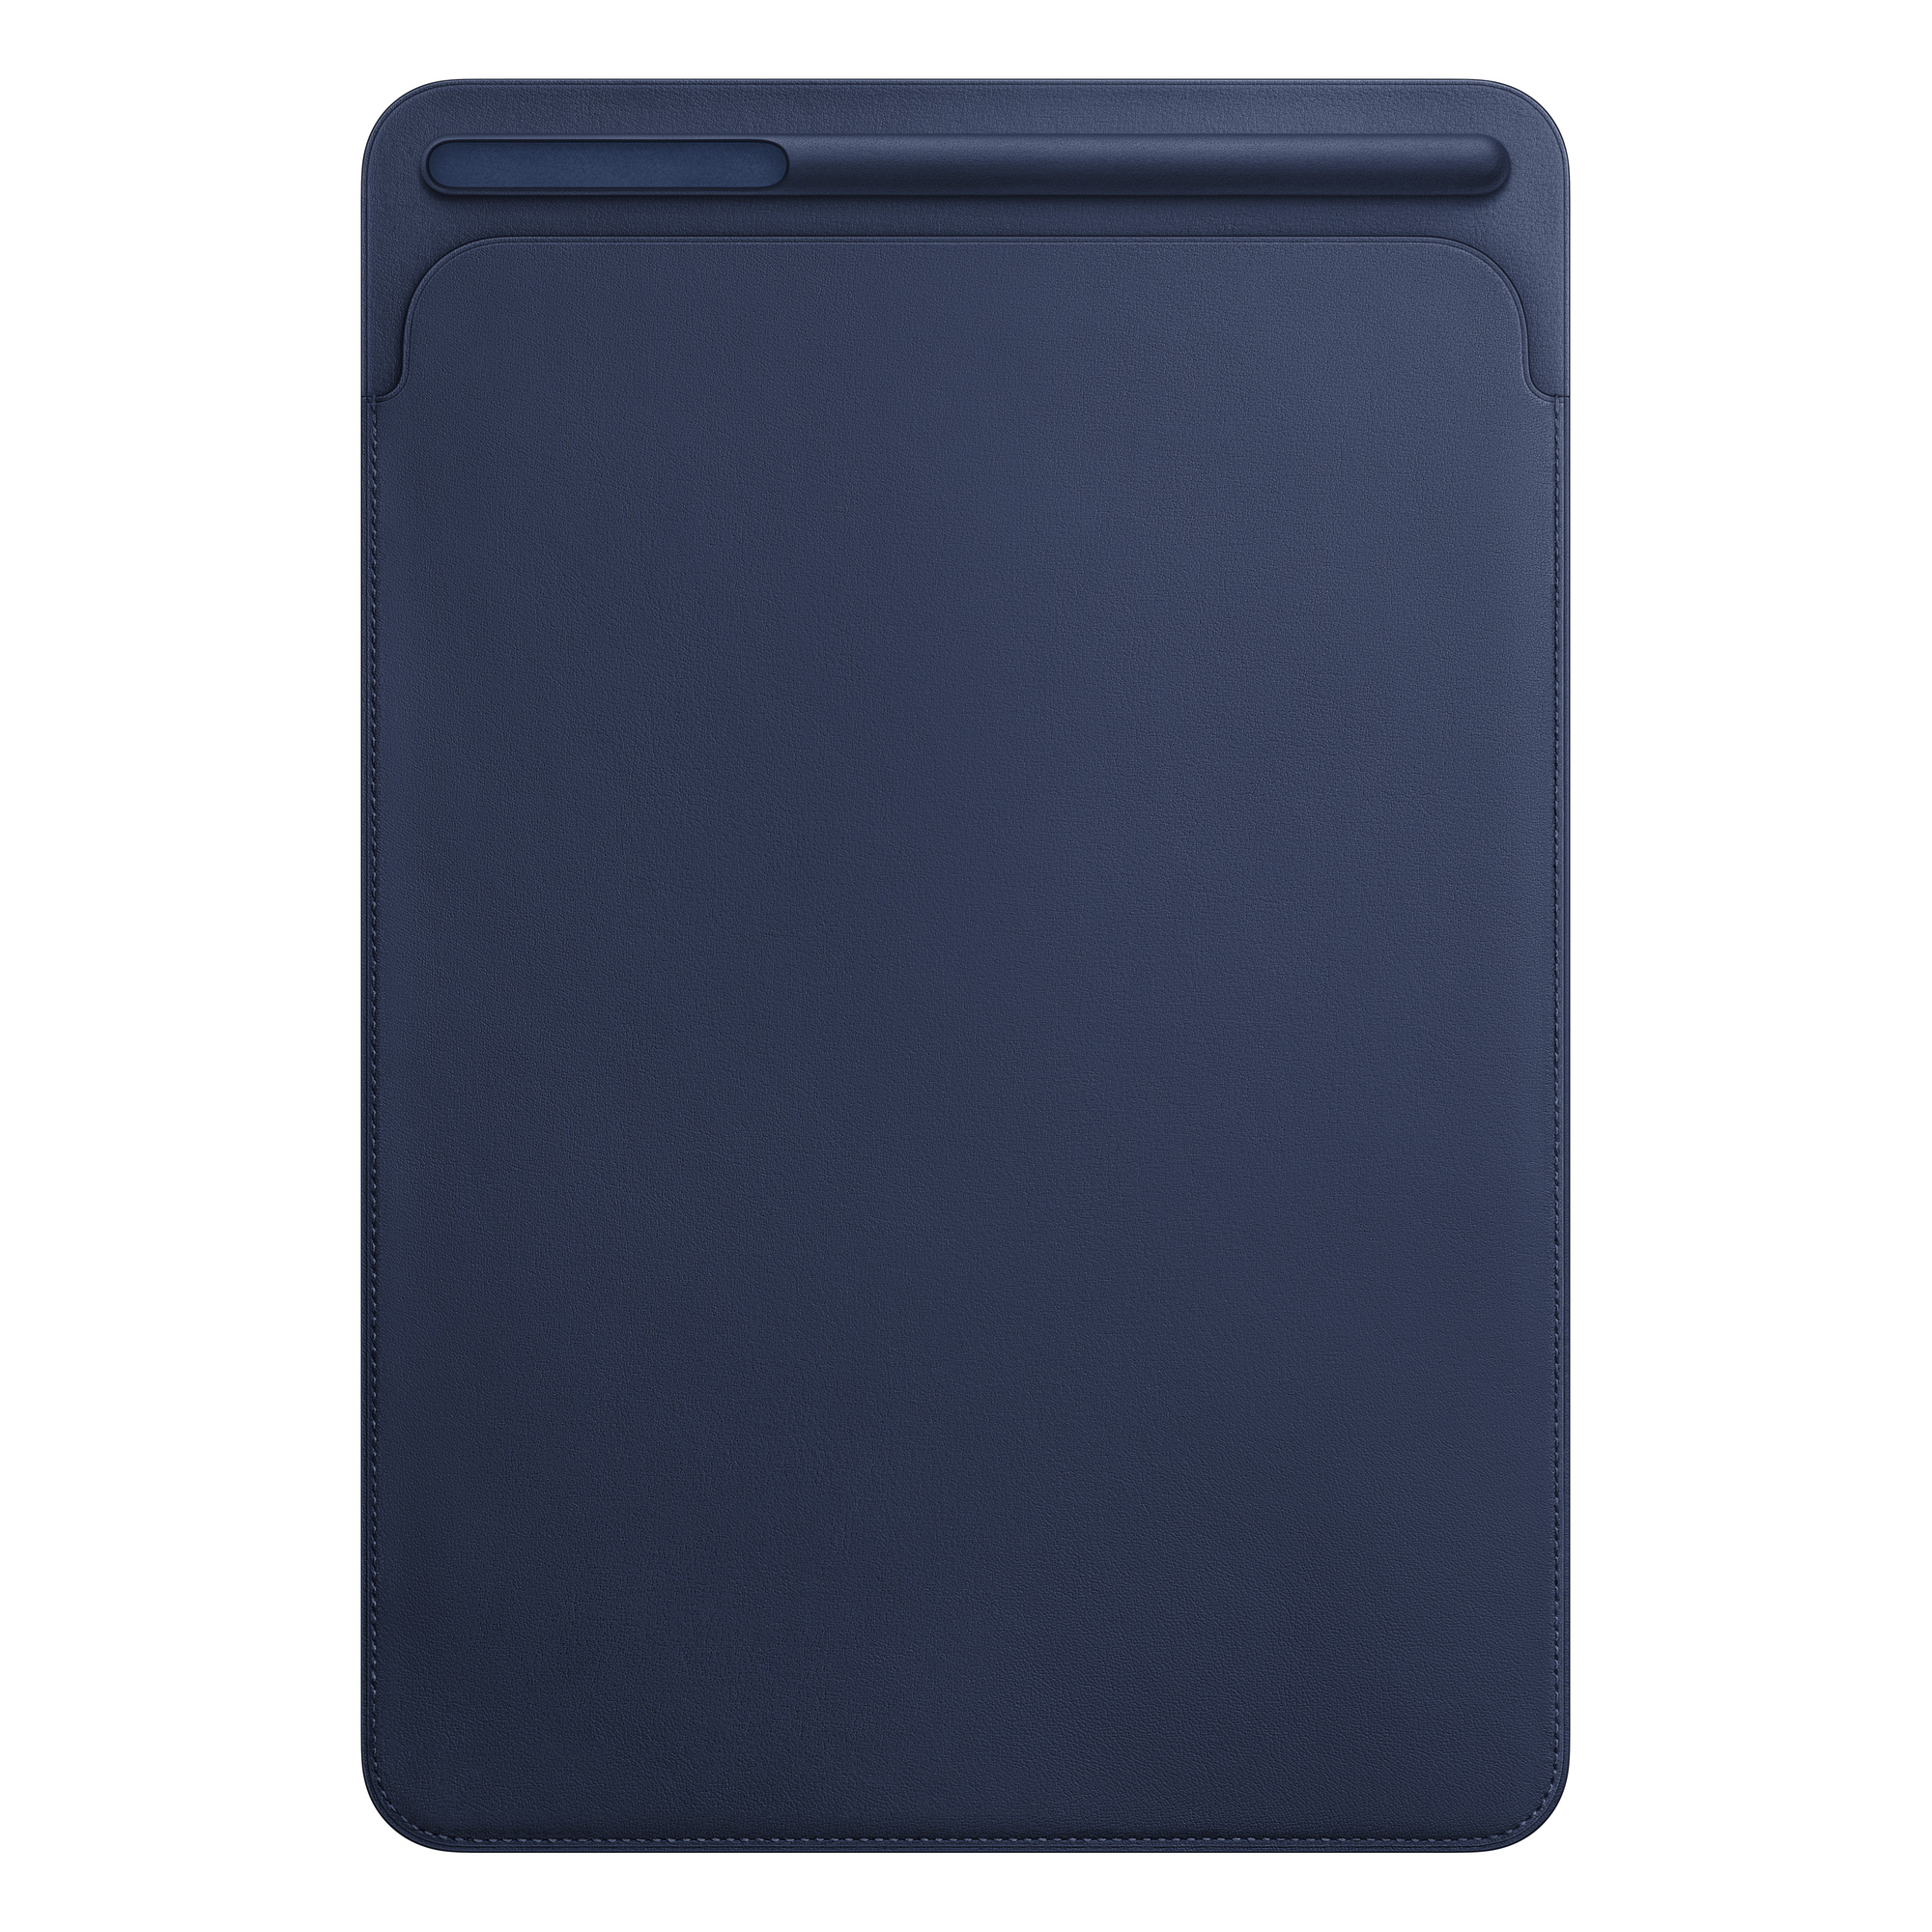 new arrival 8c4d8 c1e8f Leather Sleeve for 10.5‑inch iPad Pro - Midnight Blue